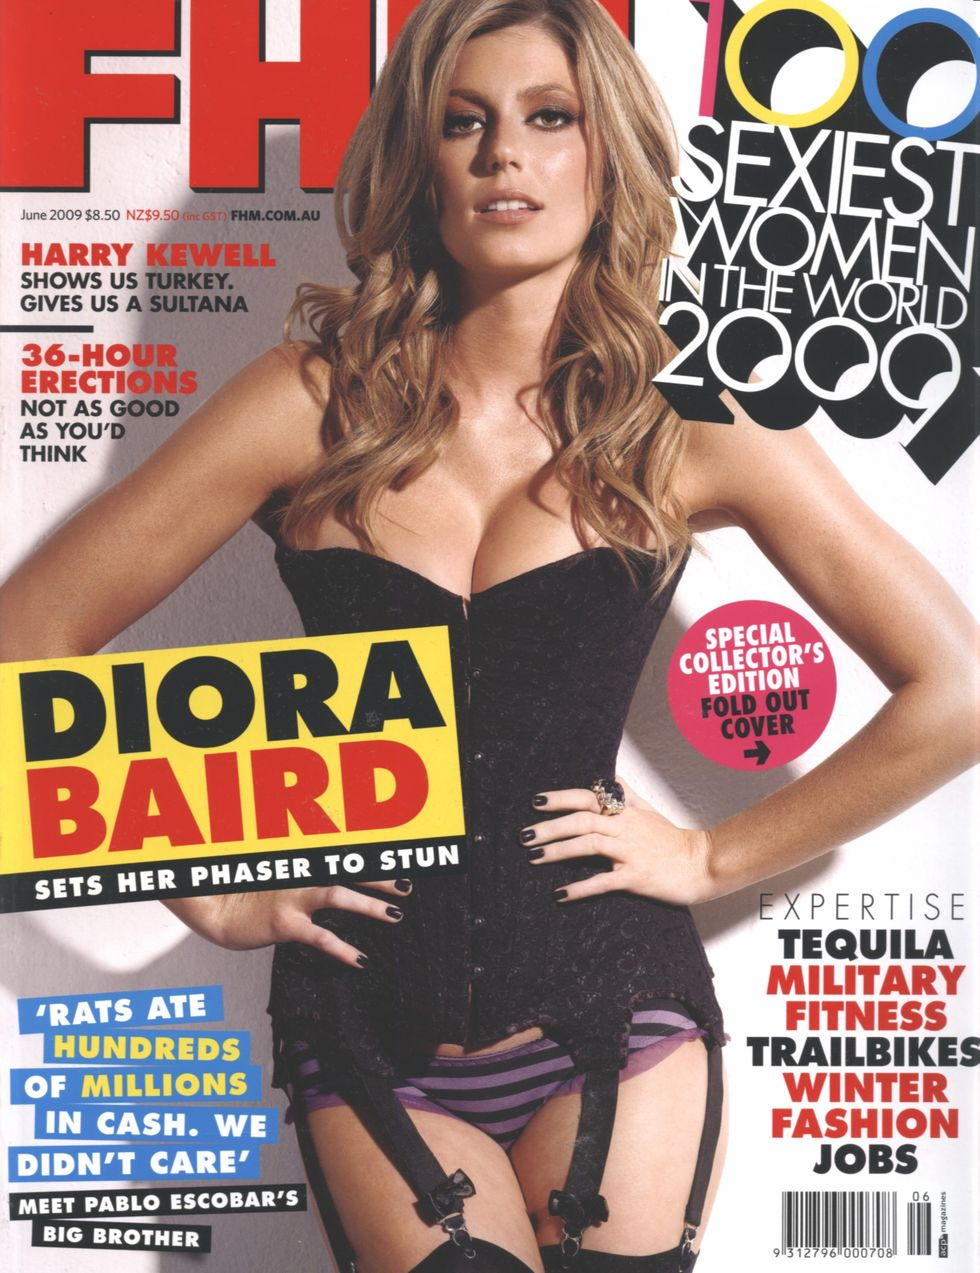 diora-baird-fhm-magazine-june-2009-2-01